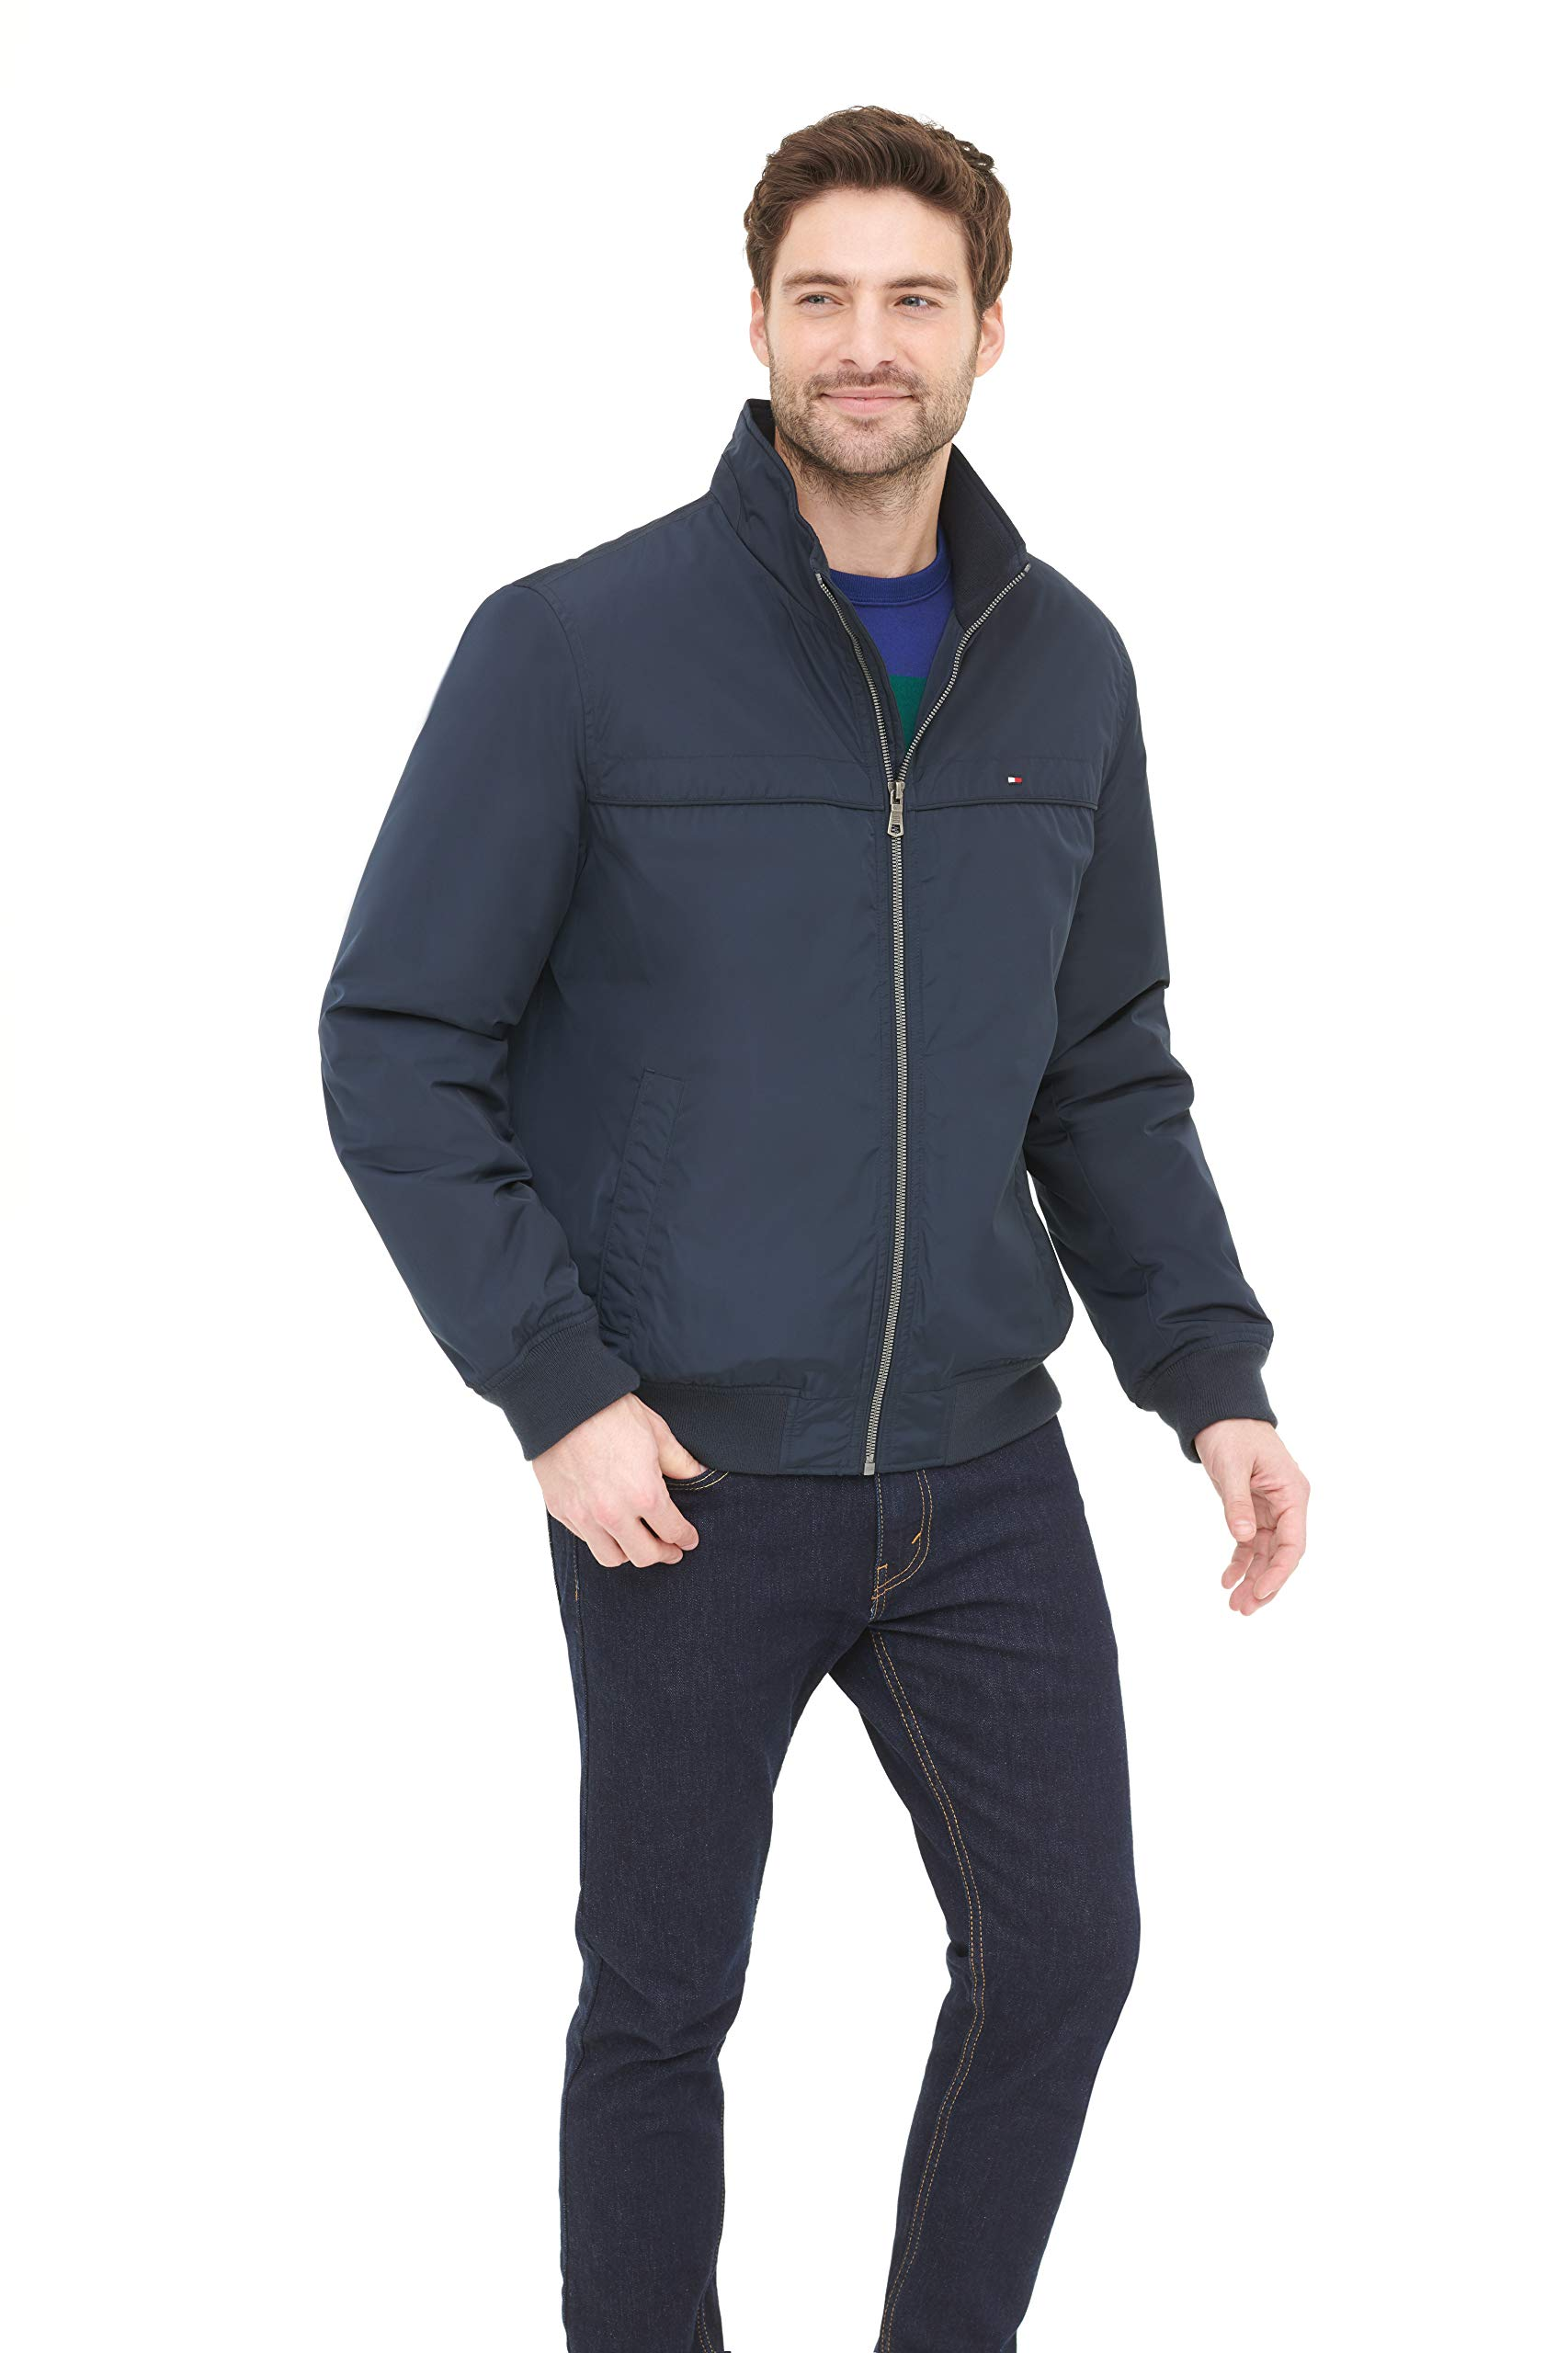 Tommy Hilfiger Men's Performance Faux Memory Bomber Jacket, Navy, S by Tommy Hilfiger